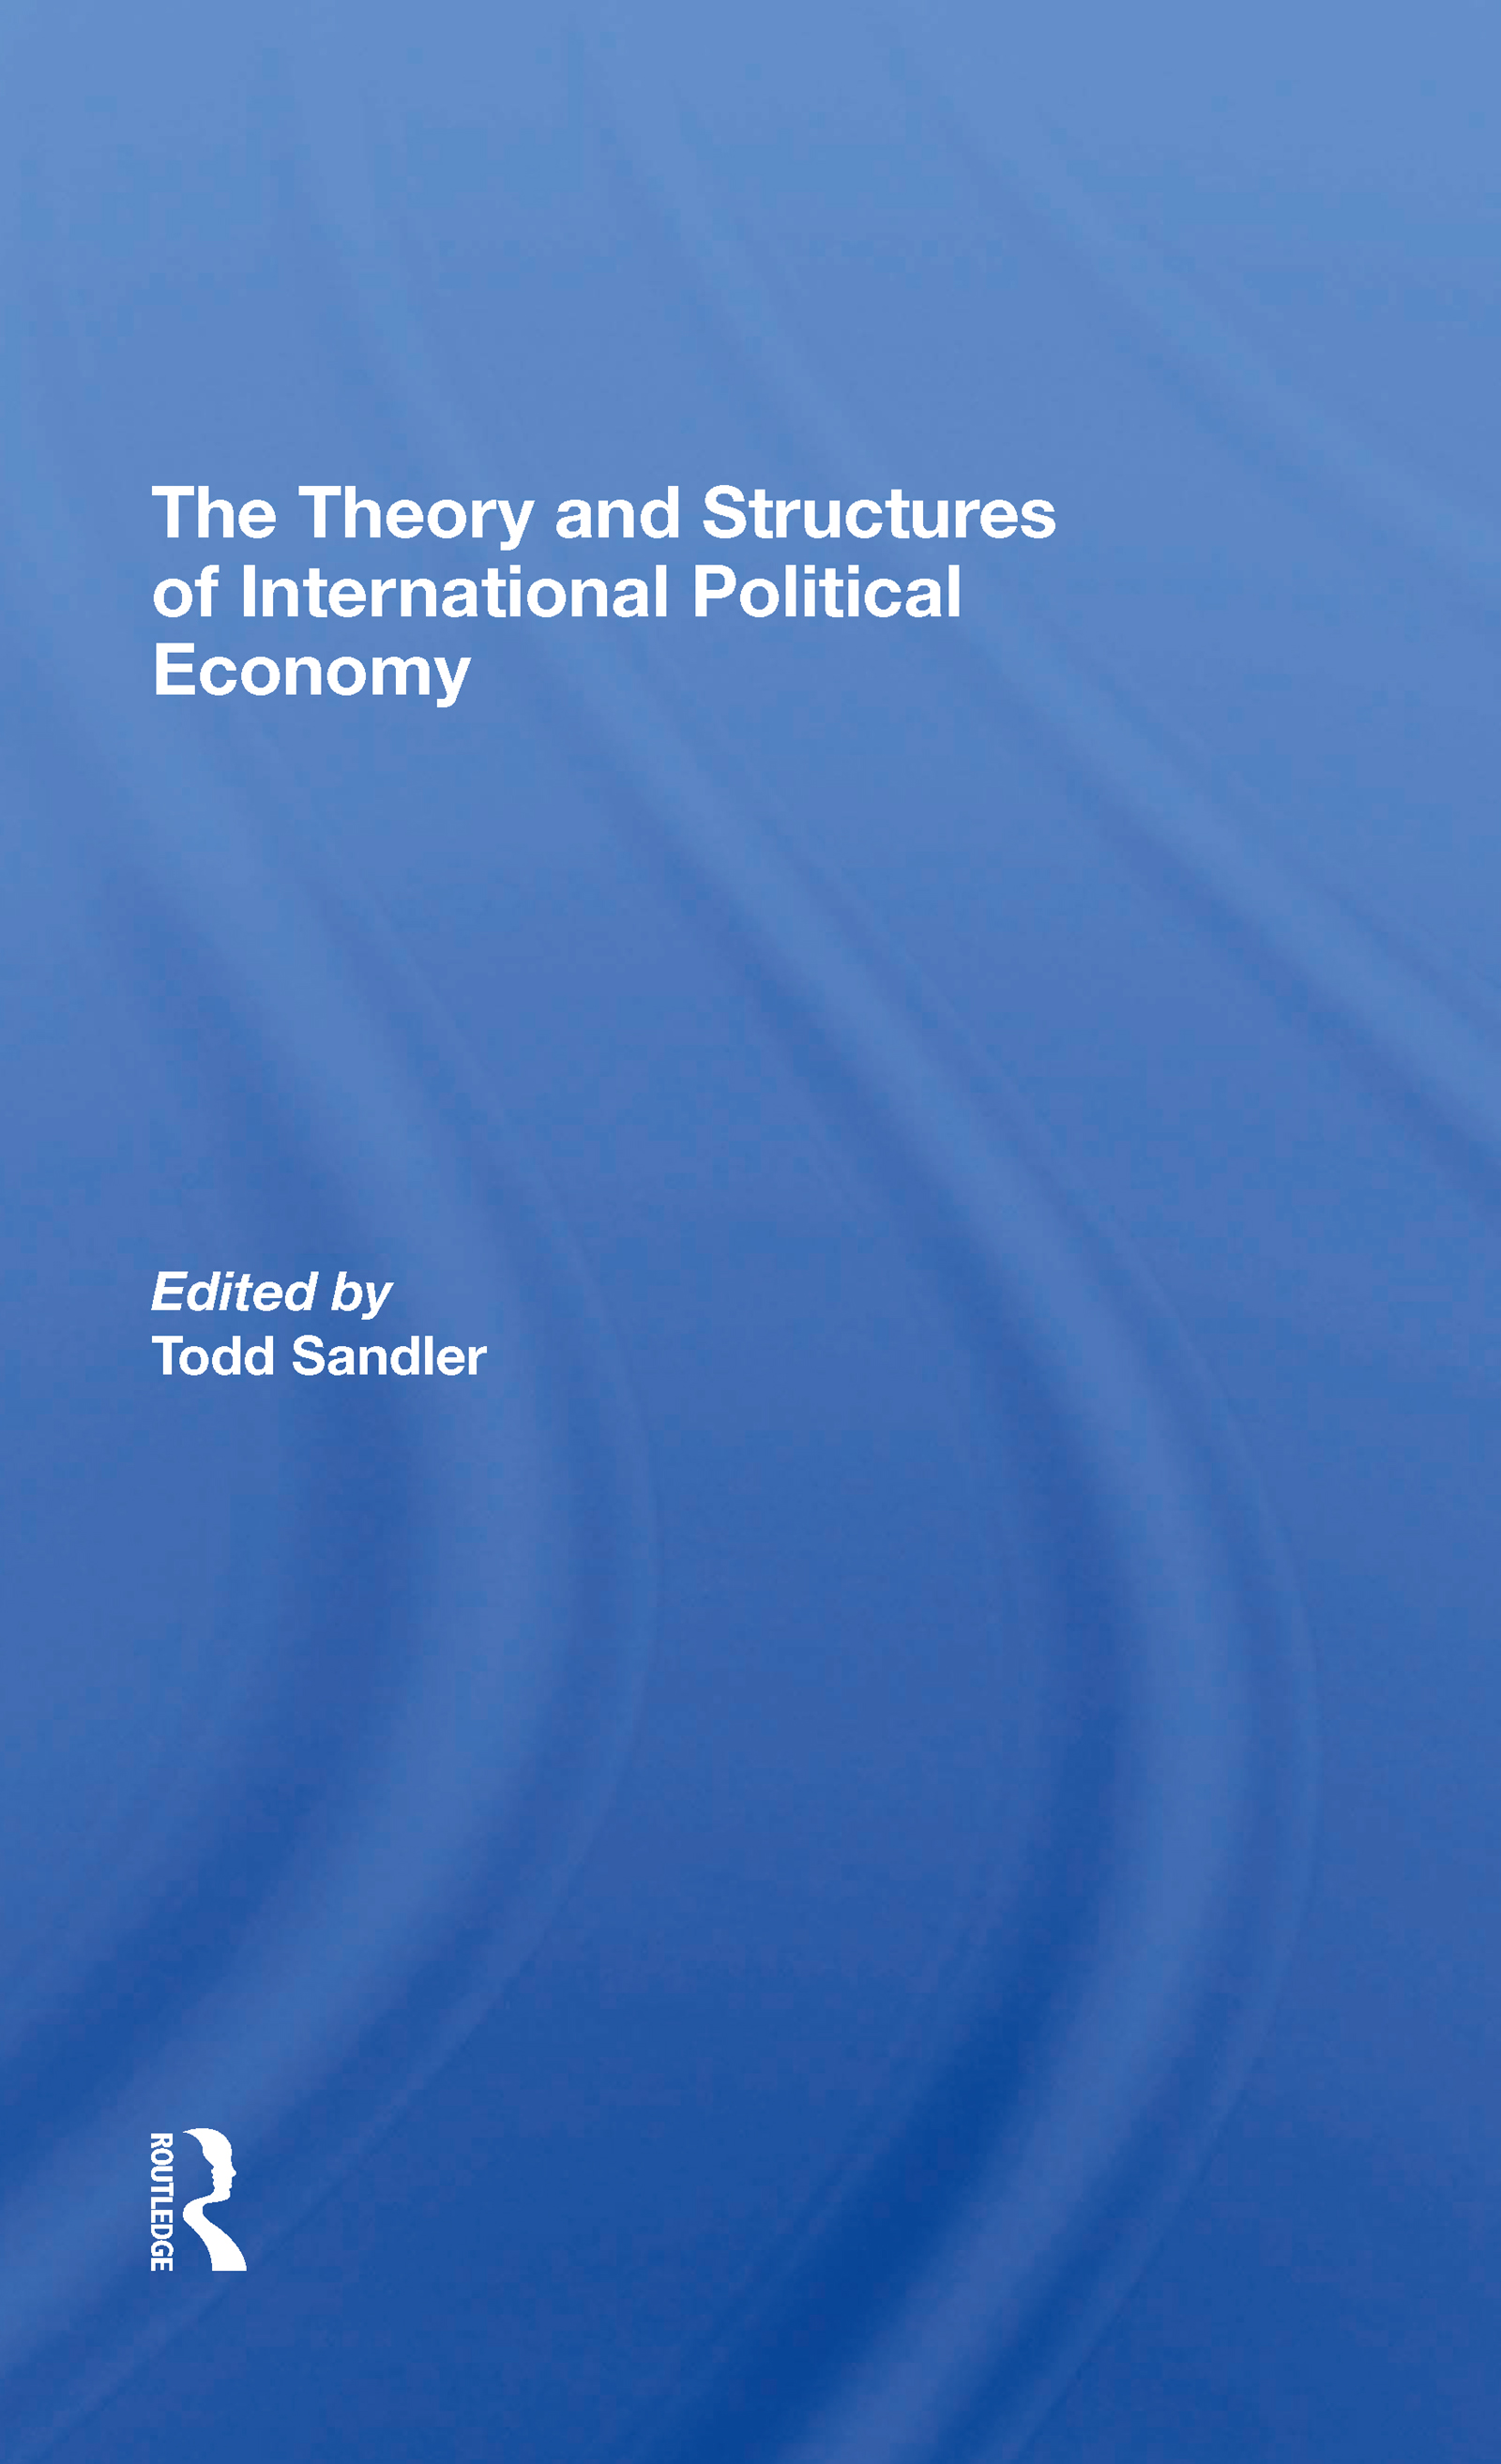 The Theory And Structures Of International Political Economy